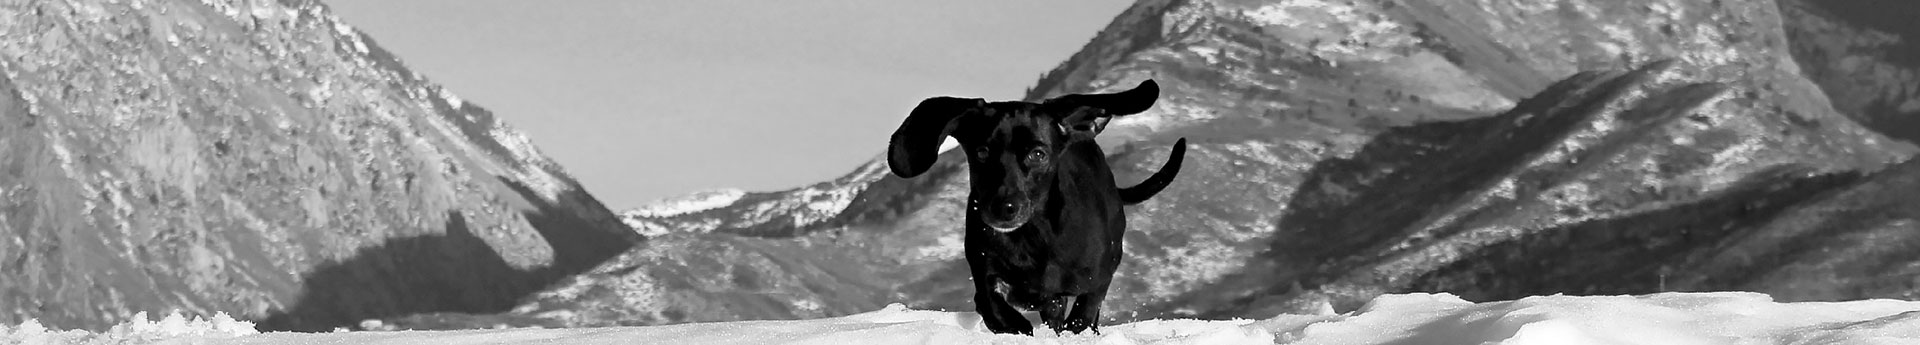 ORIJEN Tundra Dog Food - Dachshund running in the mountains - Rocket from Sandy, Utah